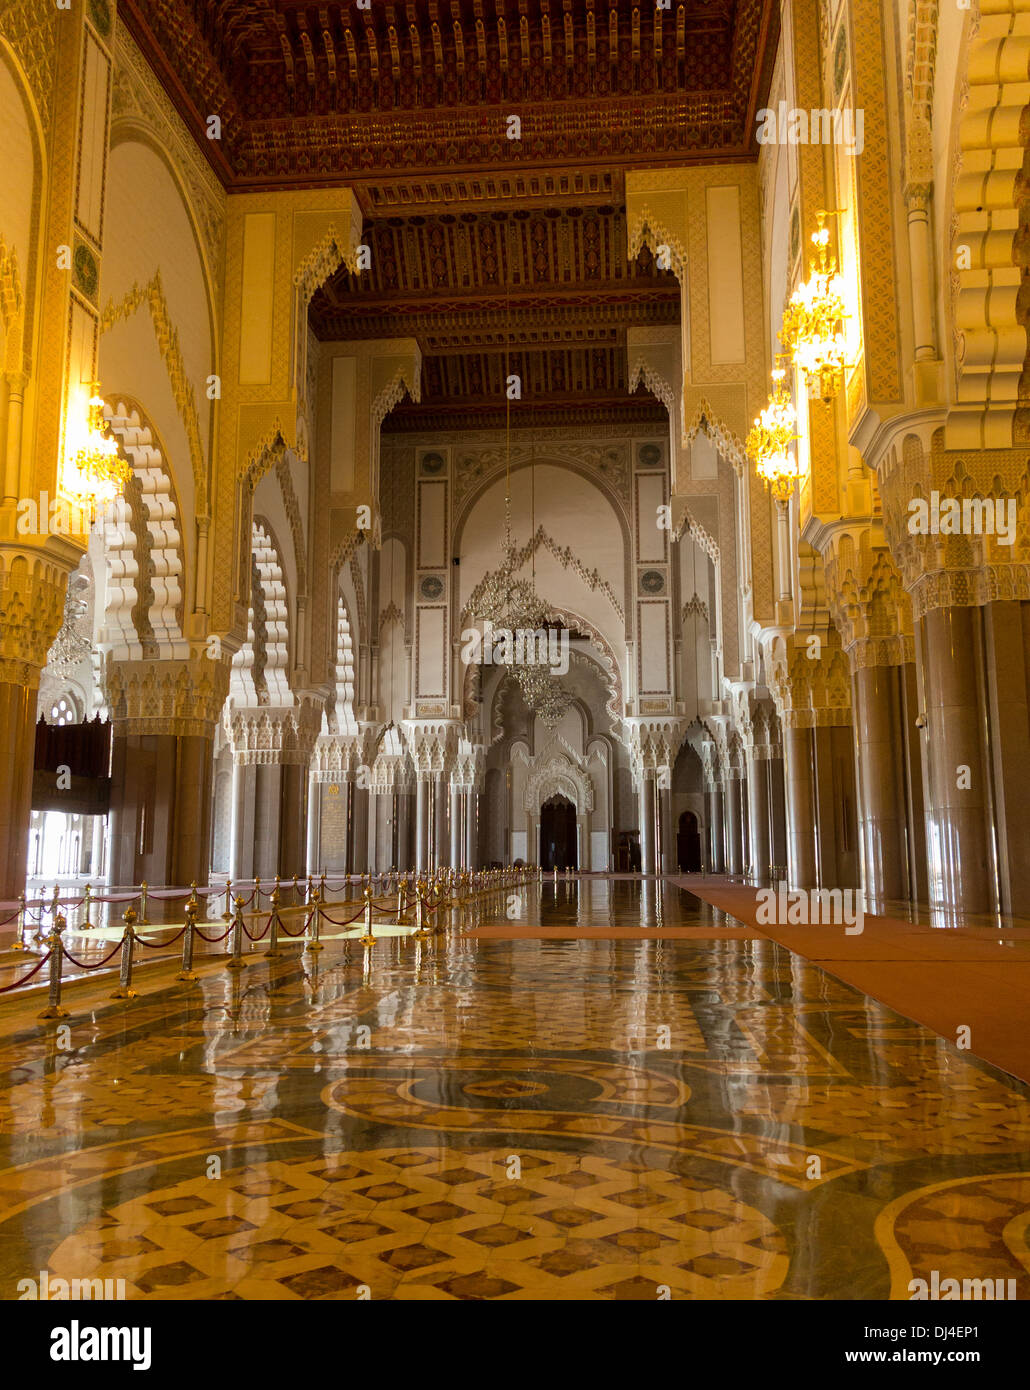 Interior of the Hassan II Mosque or Grande Mosquee Hassan II, Casablanca, Morocco - Stock Image